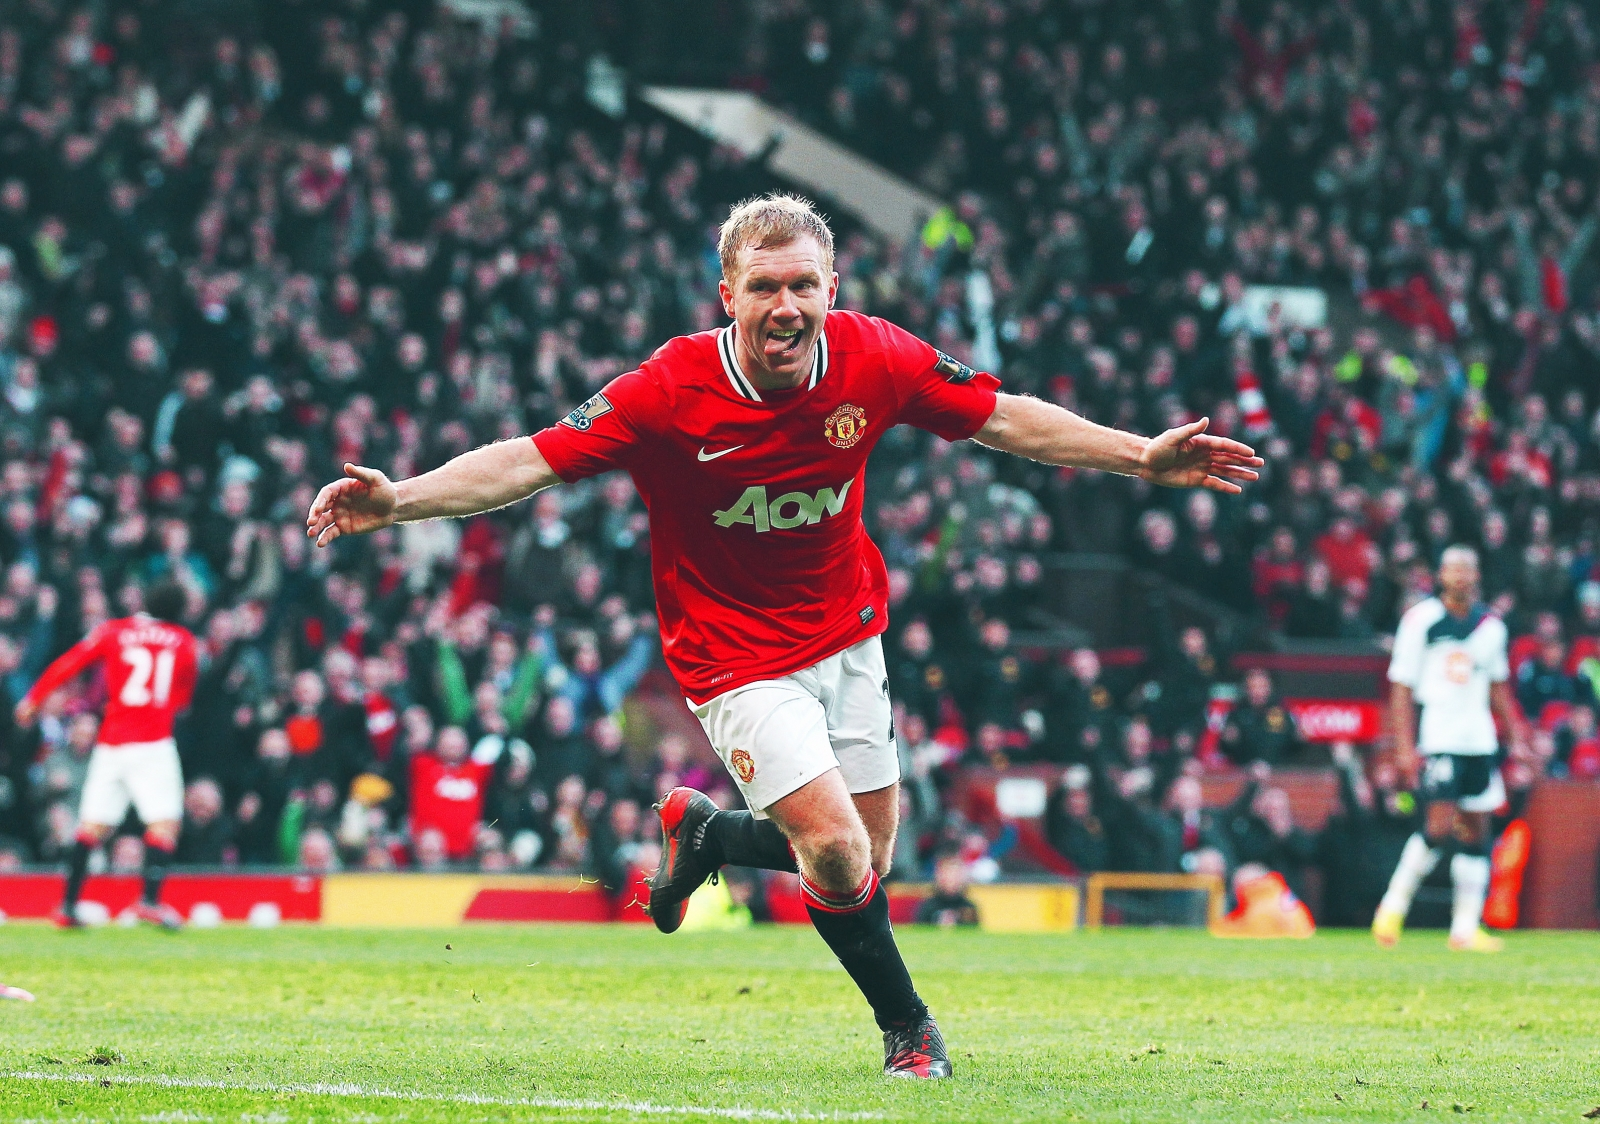 Paul Scholes: Why Paul Scholes Remains English Football's Most